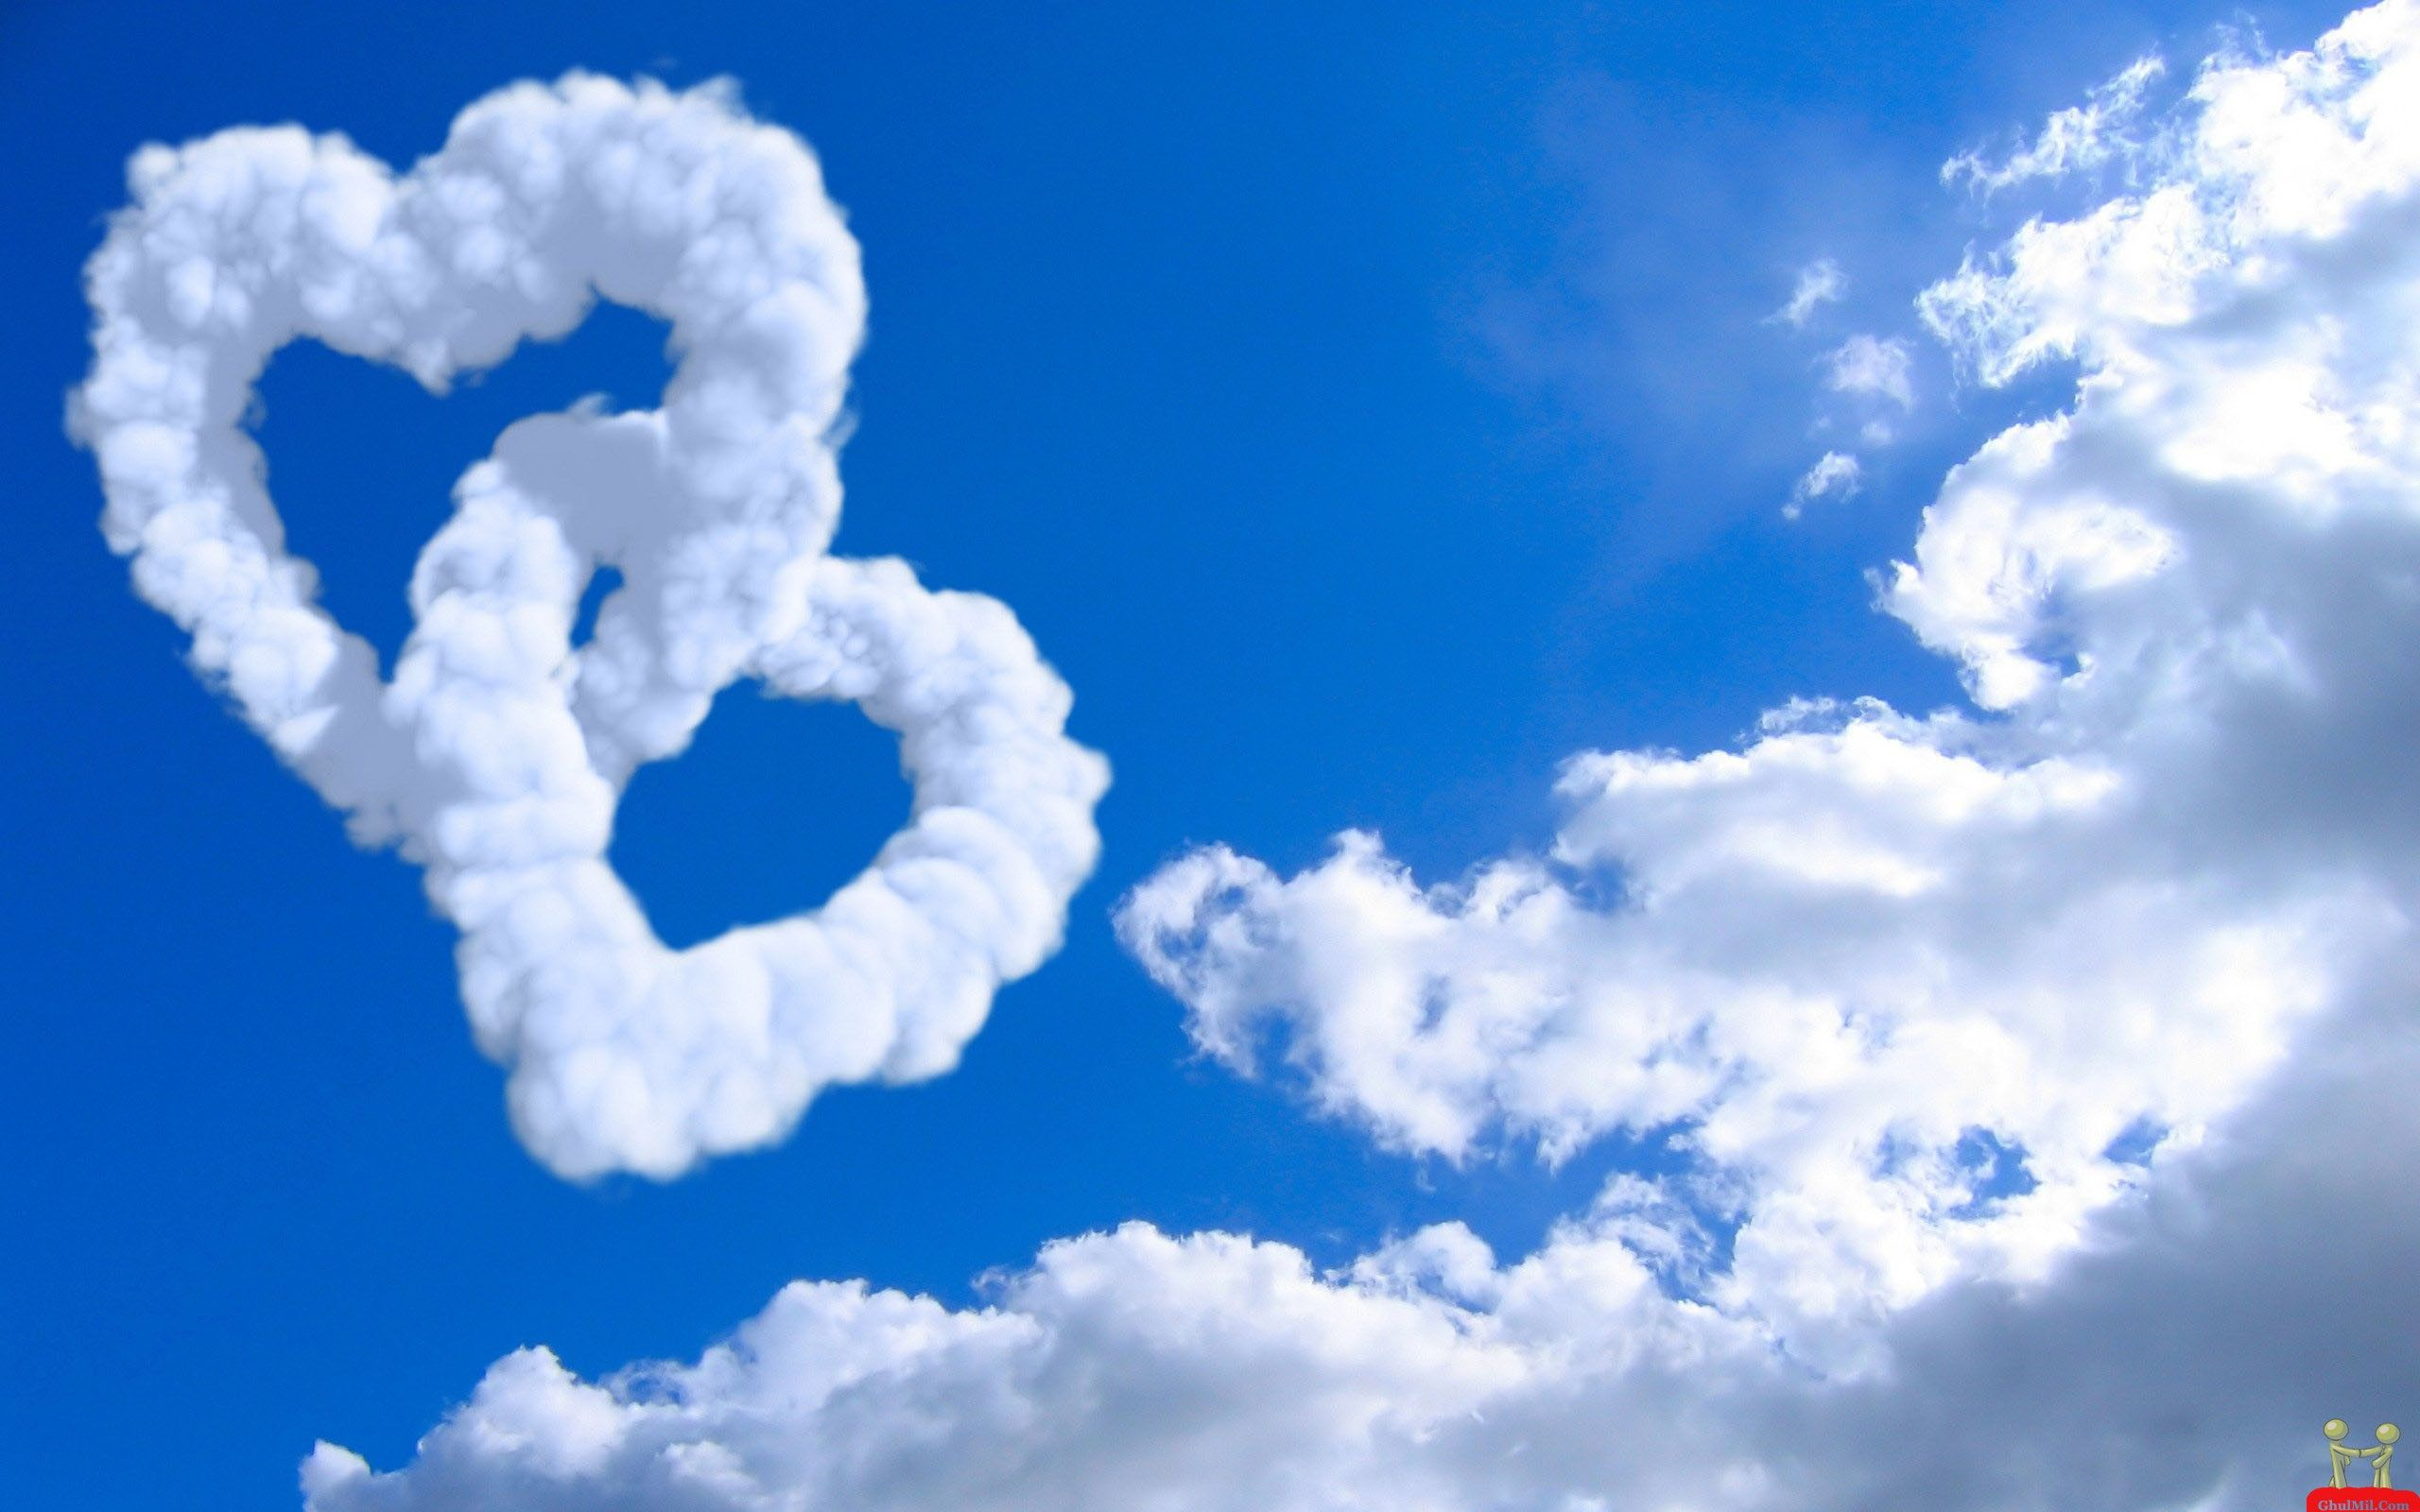 Valentines Day Love On Sky Heart Wallpaper | A Sweetheart of a ...